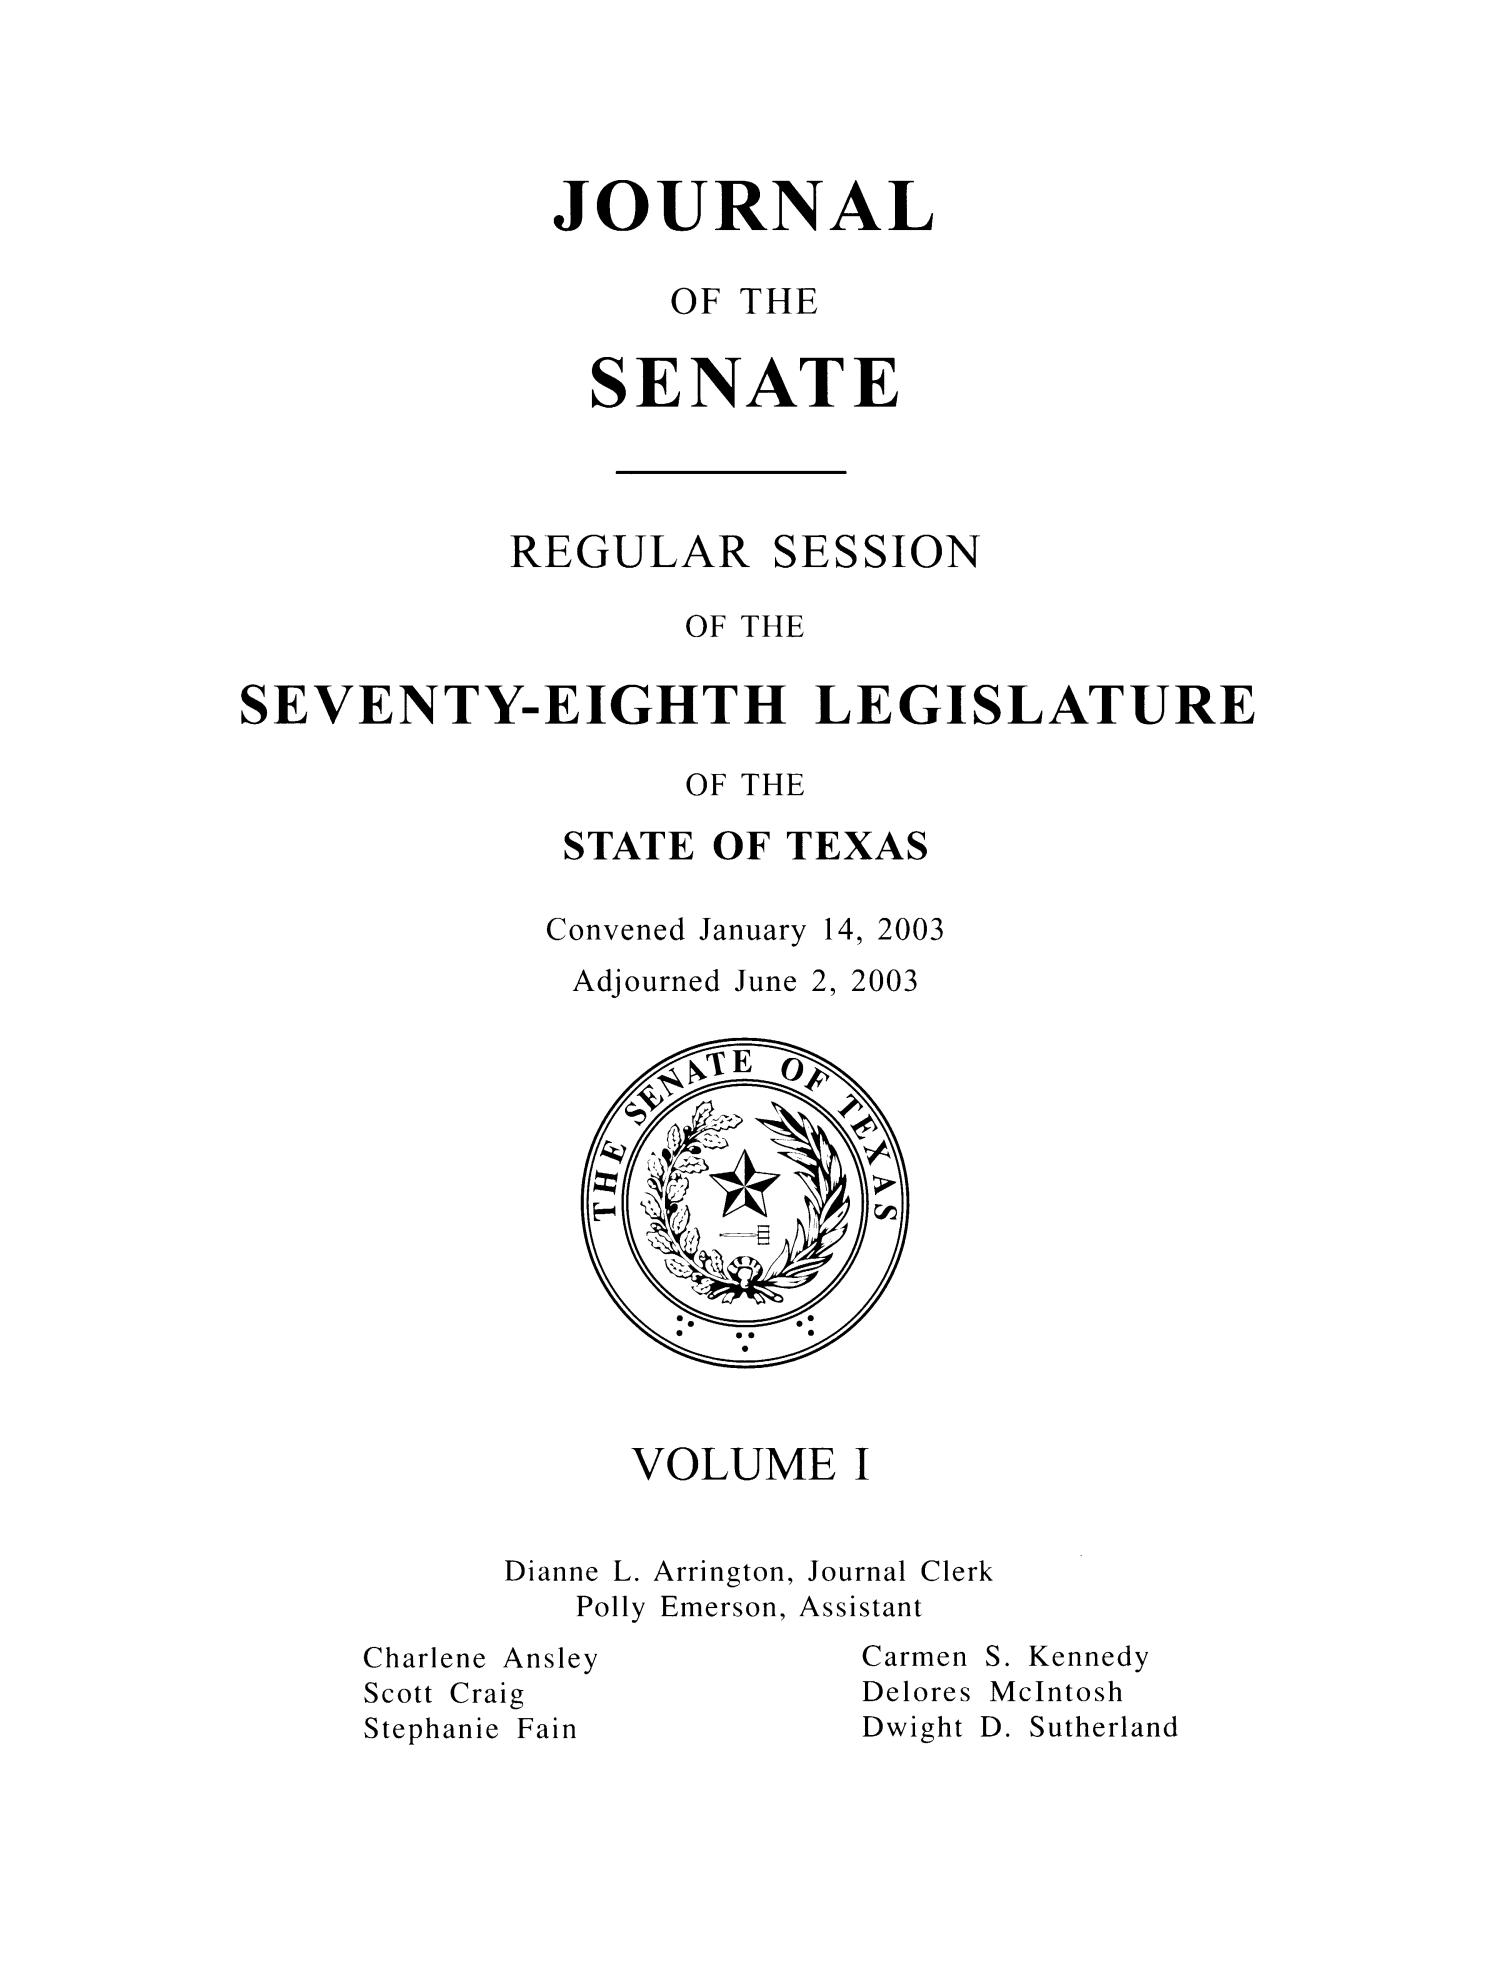 Journal of the Senate, Regular Session of the Seventy-Eighth Legislature of the State of Texas, Volume 1                                                                                                      Title Page